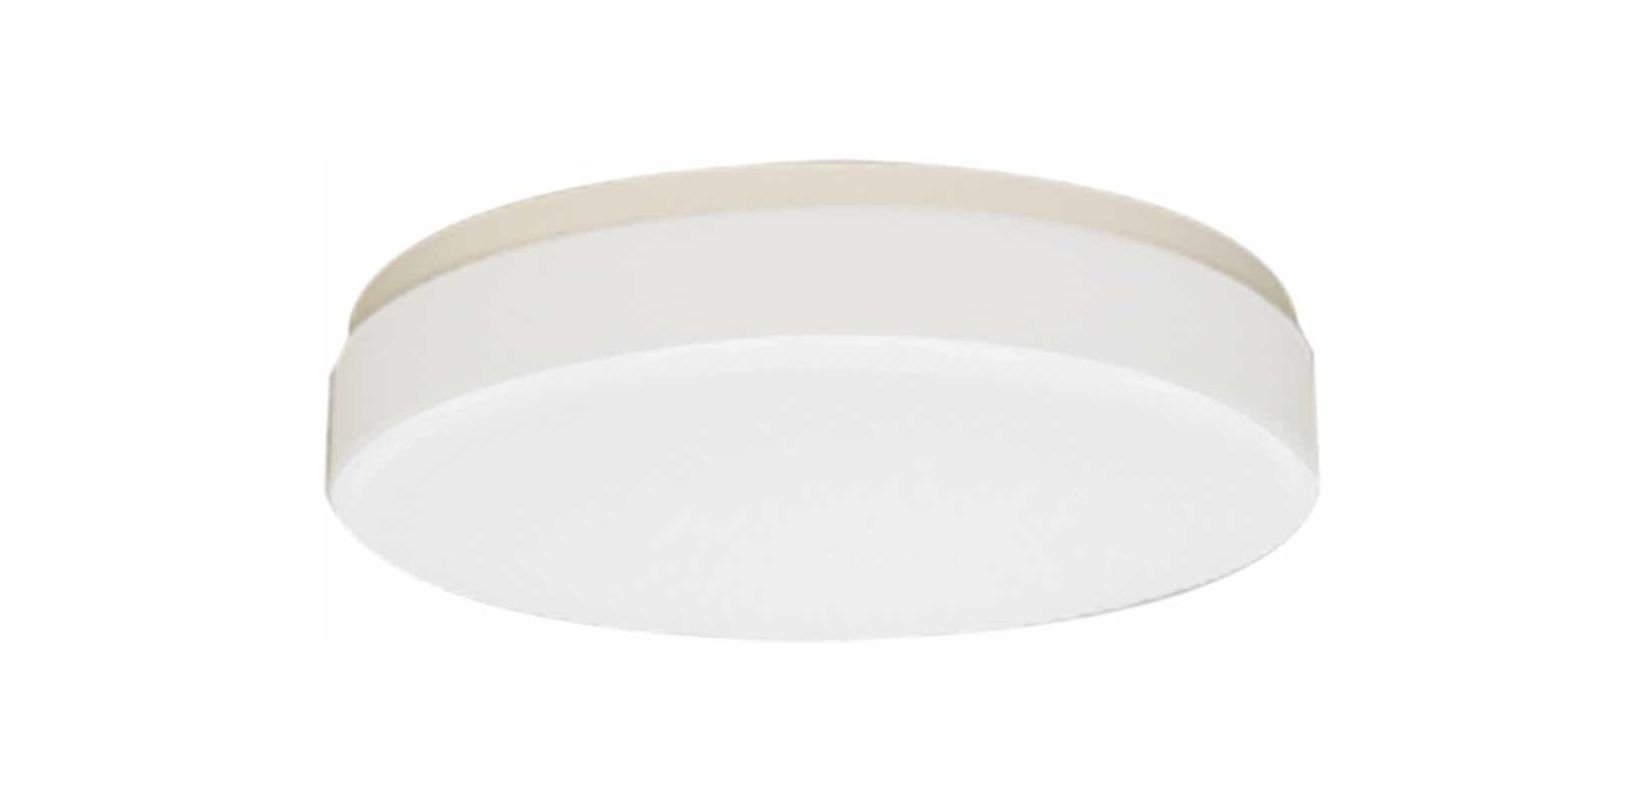 Volume Lighting V6495 2 Light Flush Mount Ceiling Fixture with Round